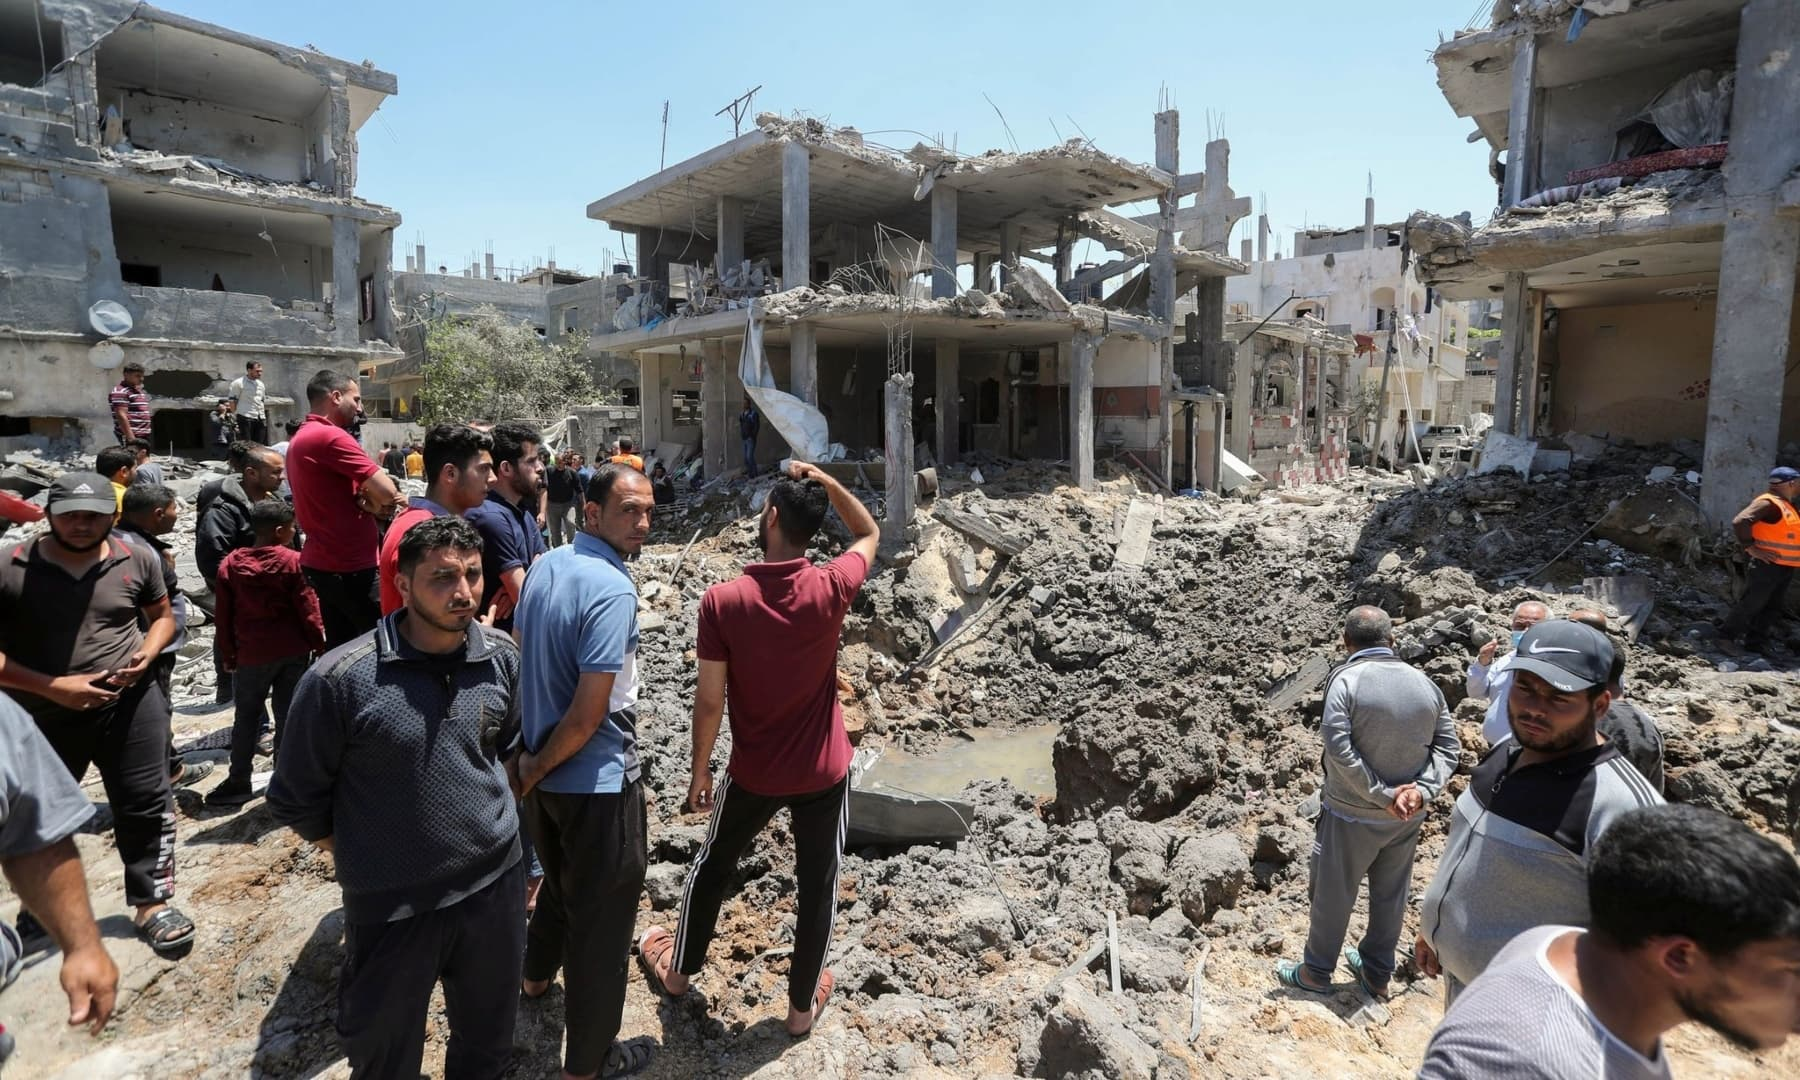 Palestinians gather at the site of destroyed houses in the aftermath of Israeli air and artillery strikes as cross-border attacks by the Israeli military continue, in the northern Gaza Strip, May 14, 2021. — Reuters